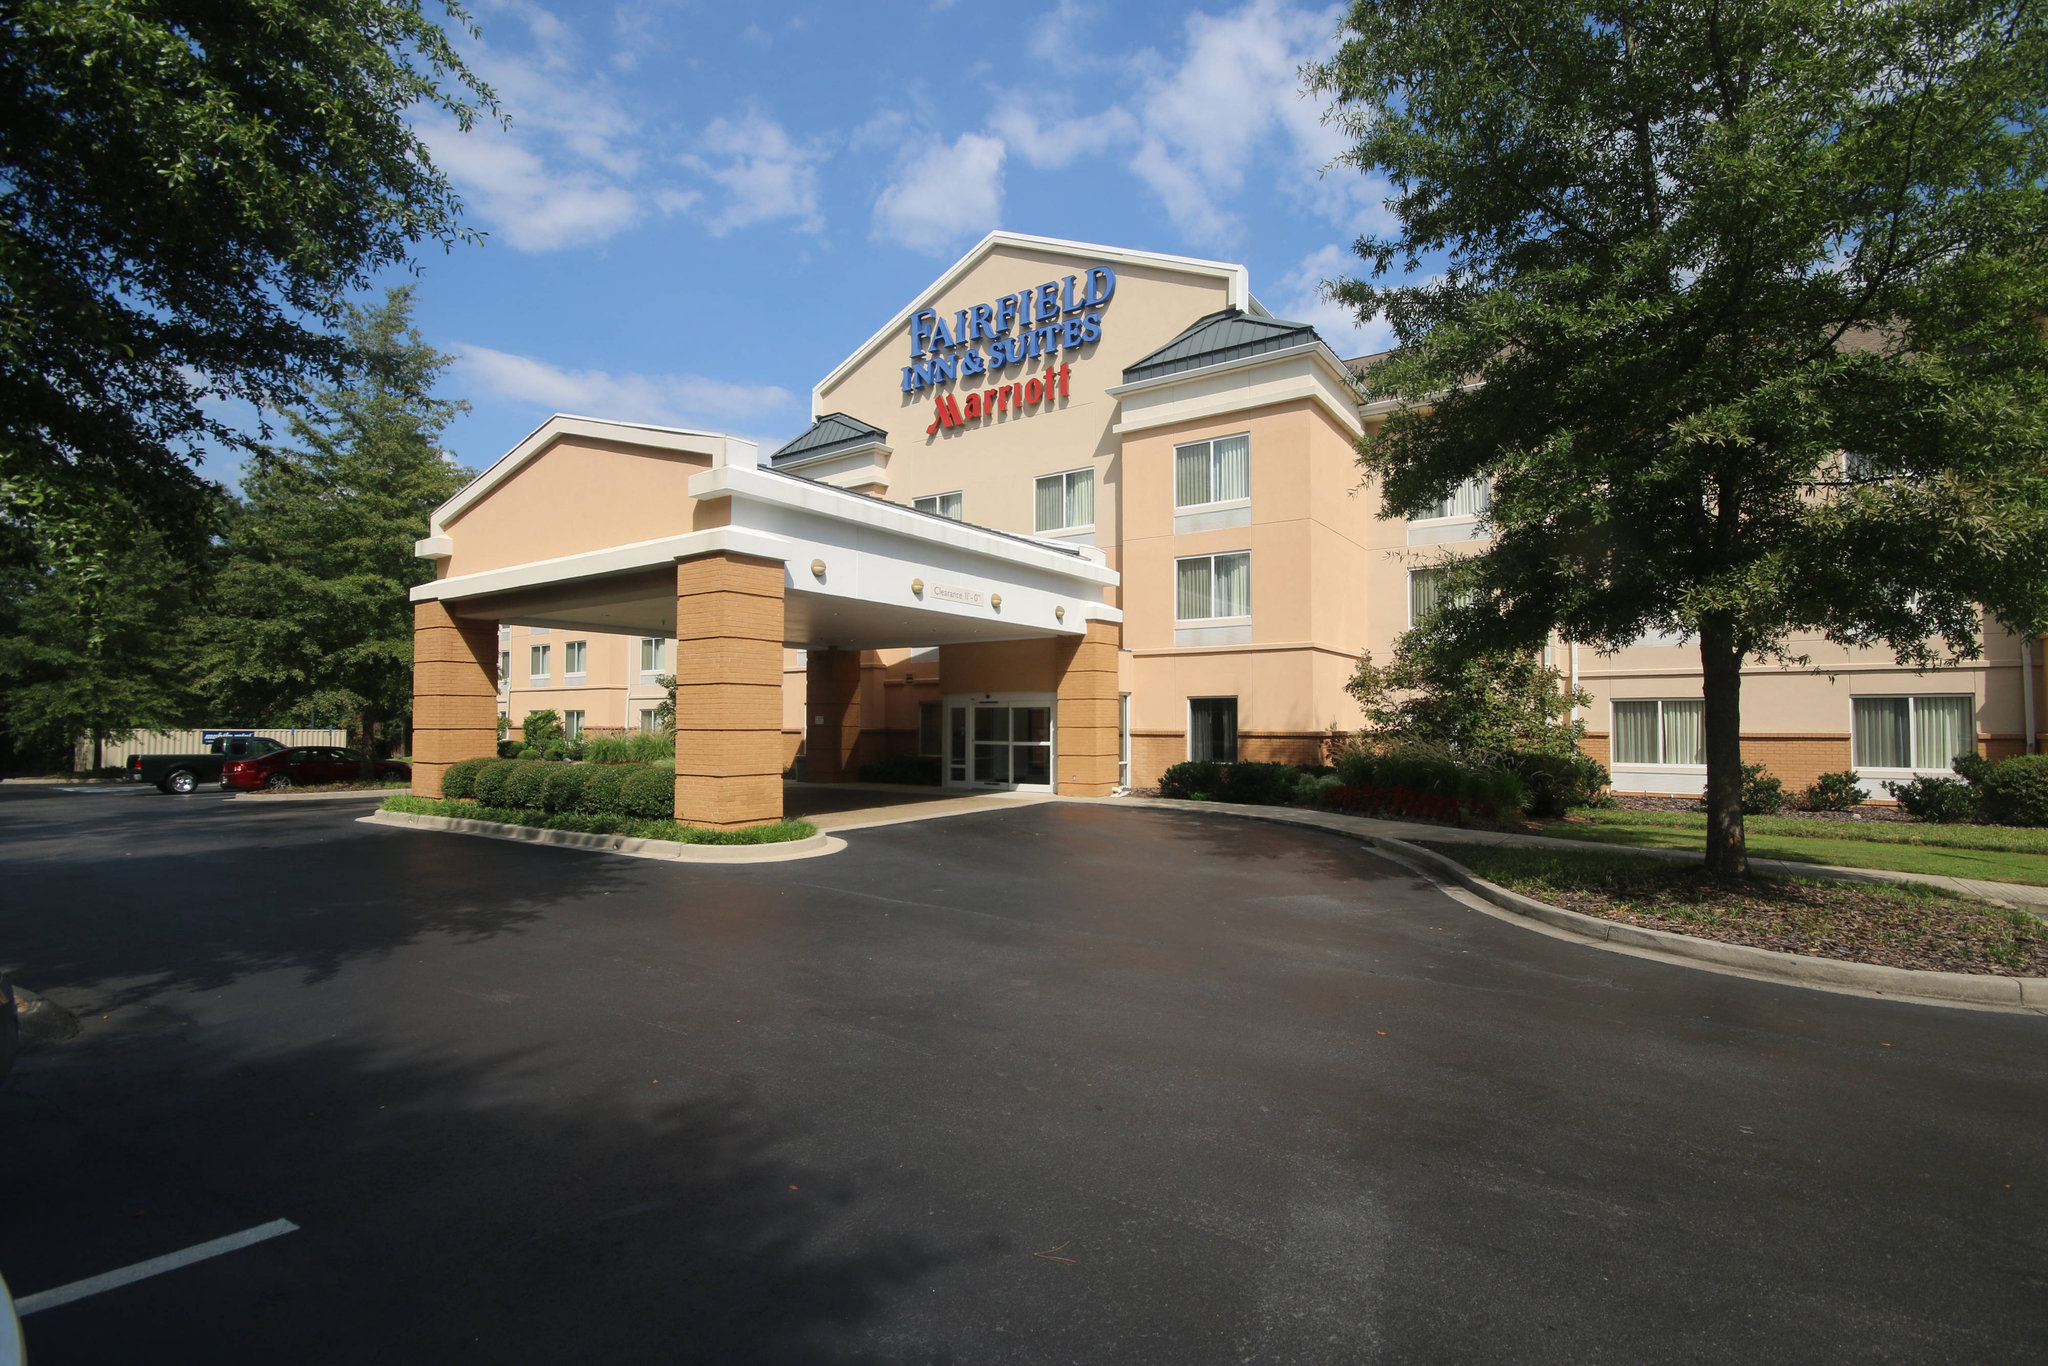 Fairfield Inn and Suites by Marriott Aiken